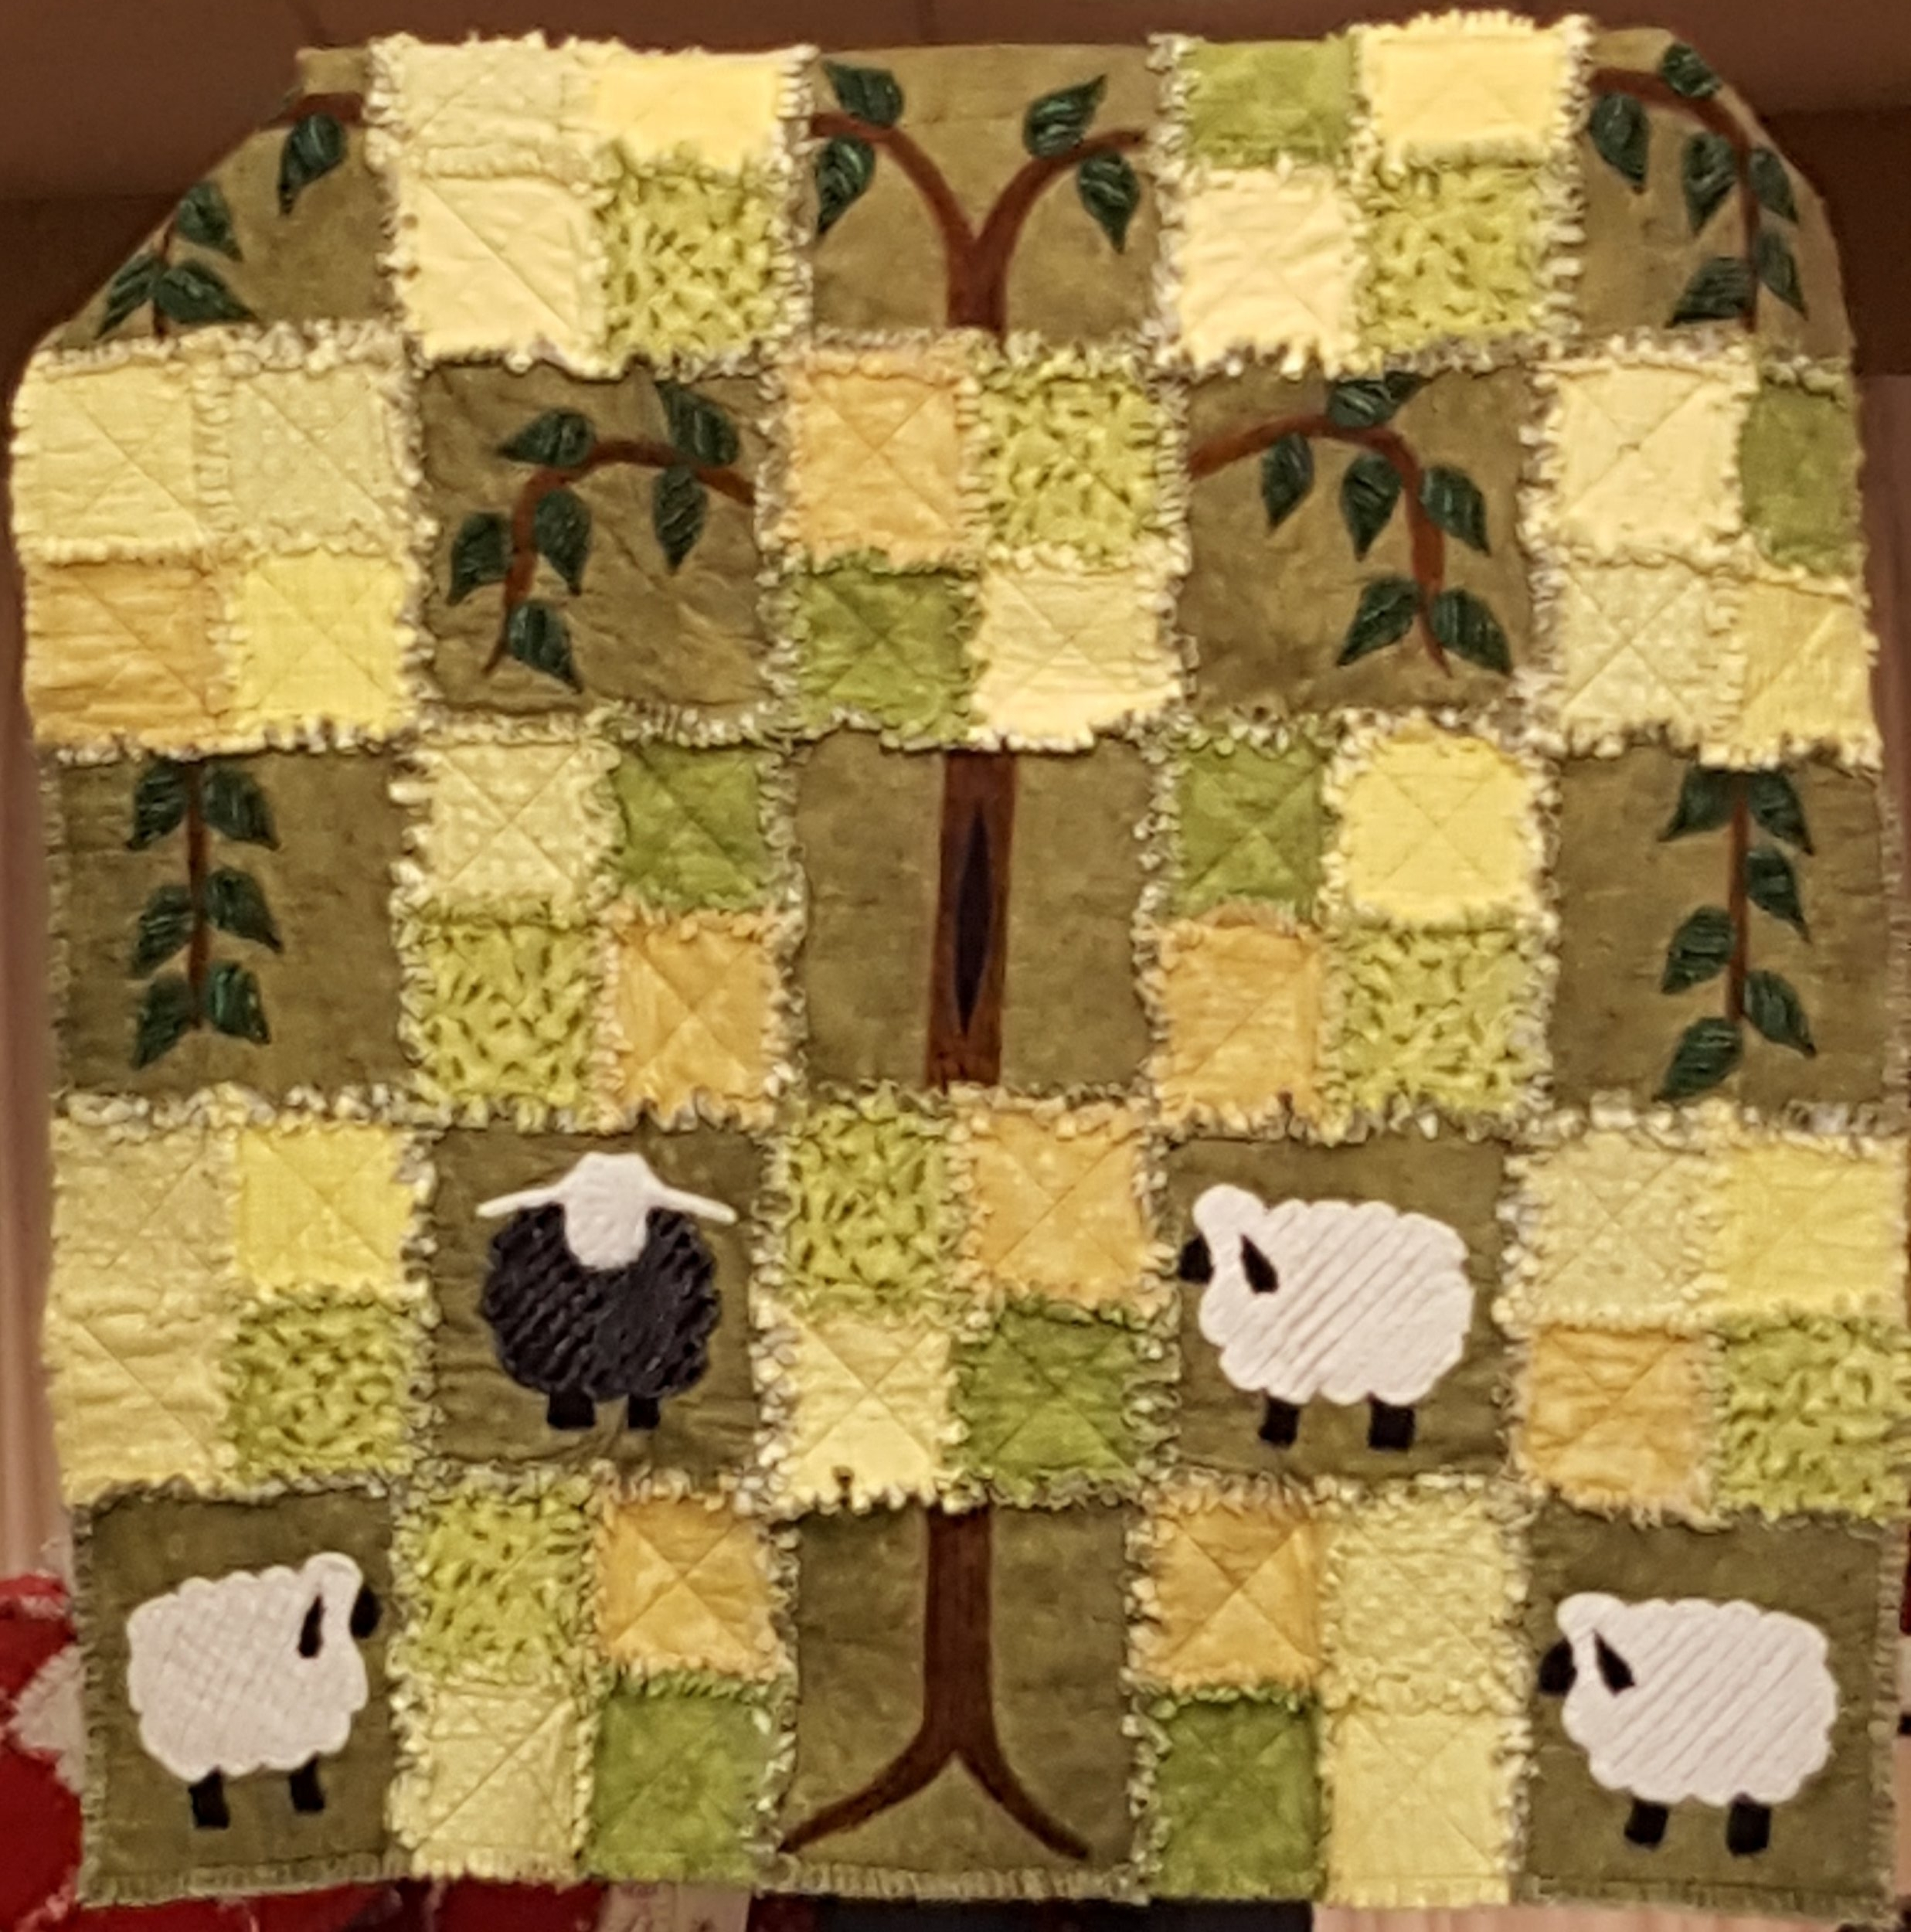 speaker sheep under tree rag quilt.jpg